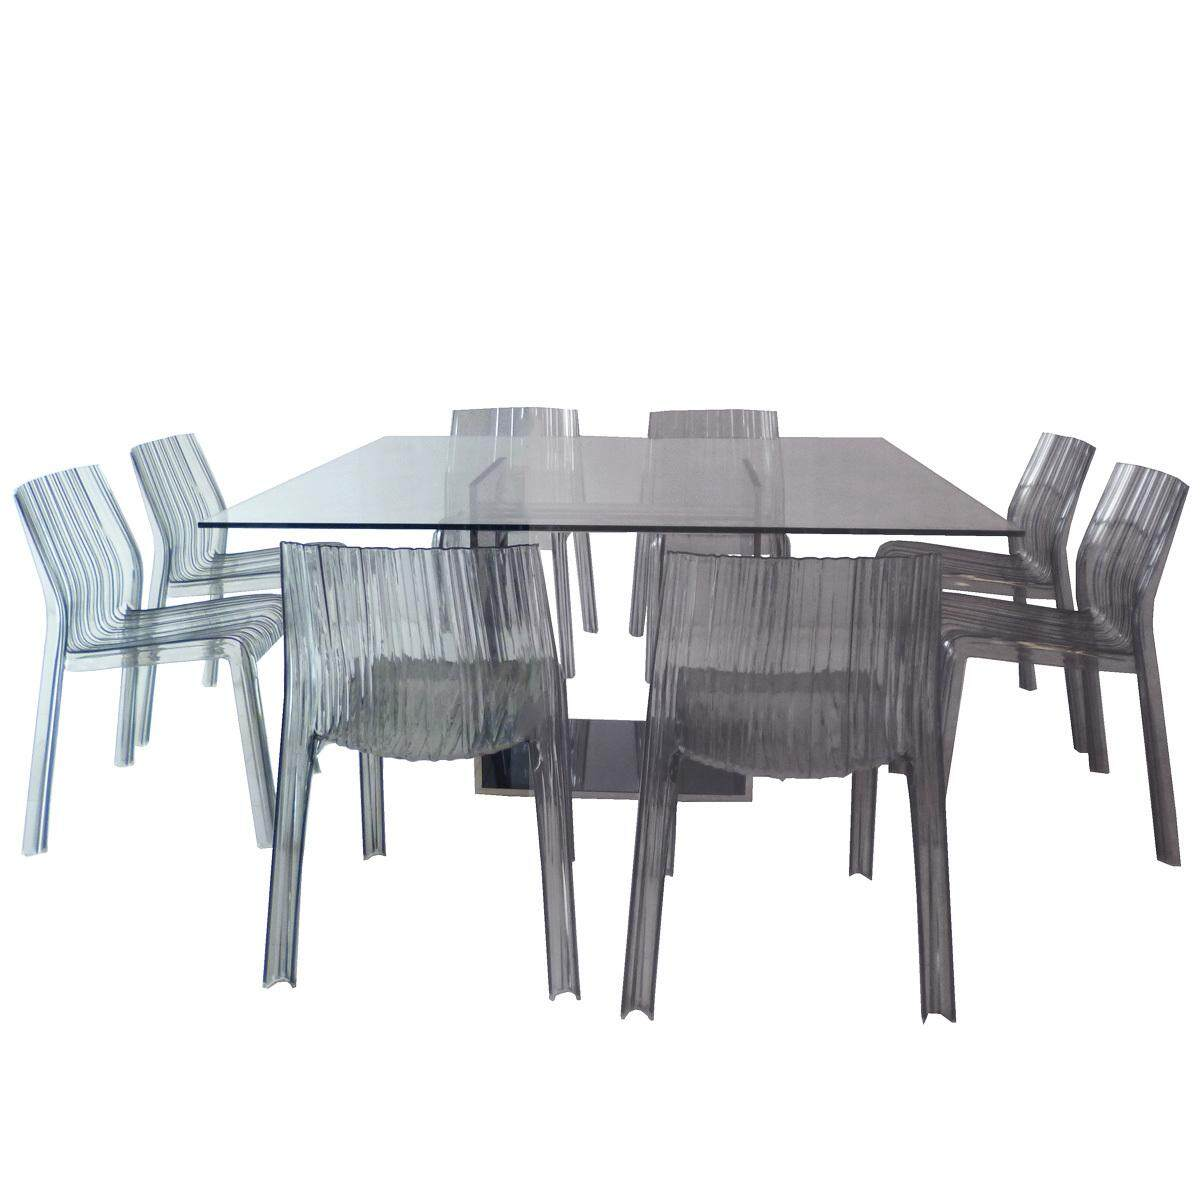 Tekkashop 1+8 Contemporary Dining Set 1x Dining Table 8x Patricia Urquiola Frilly Chairs